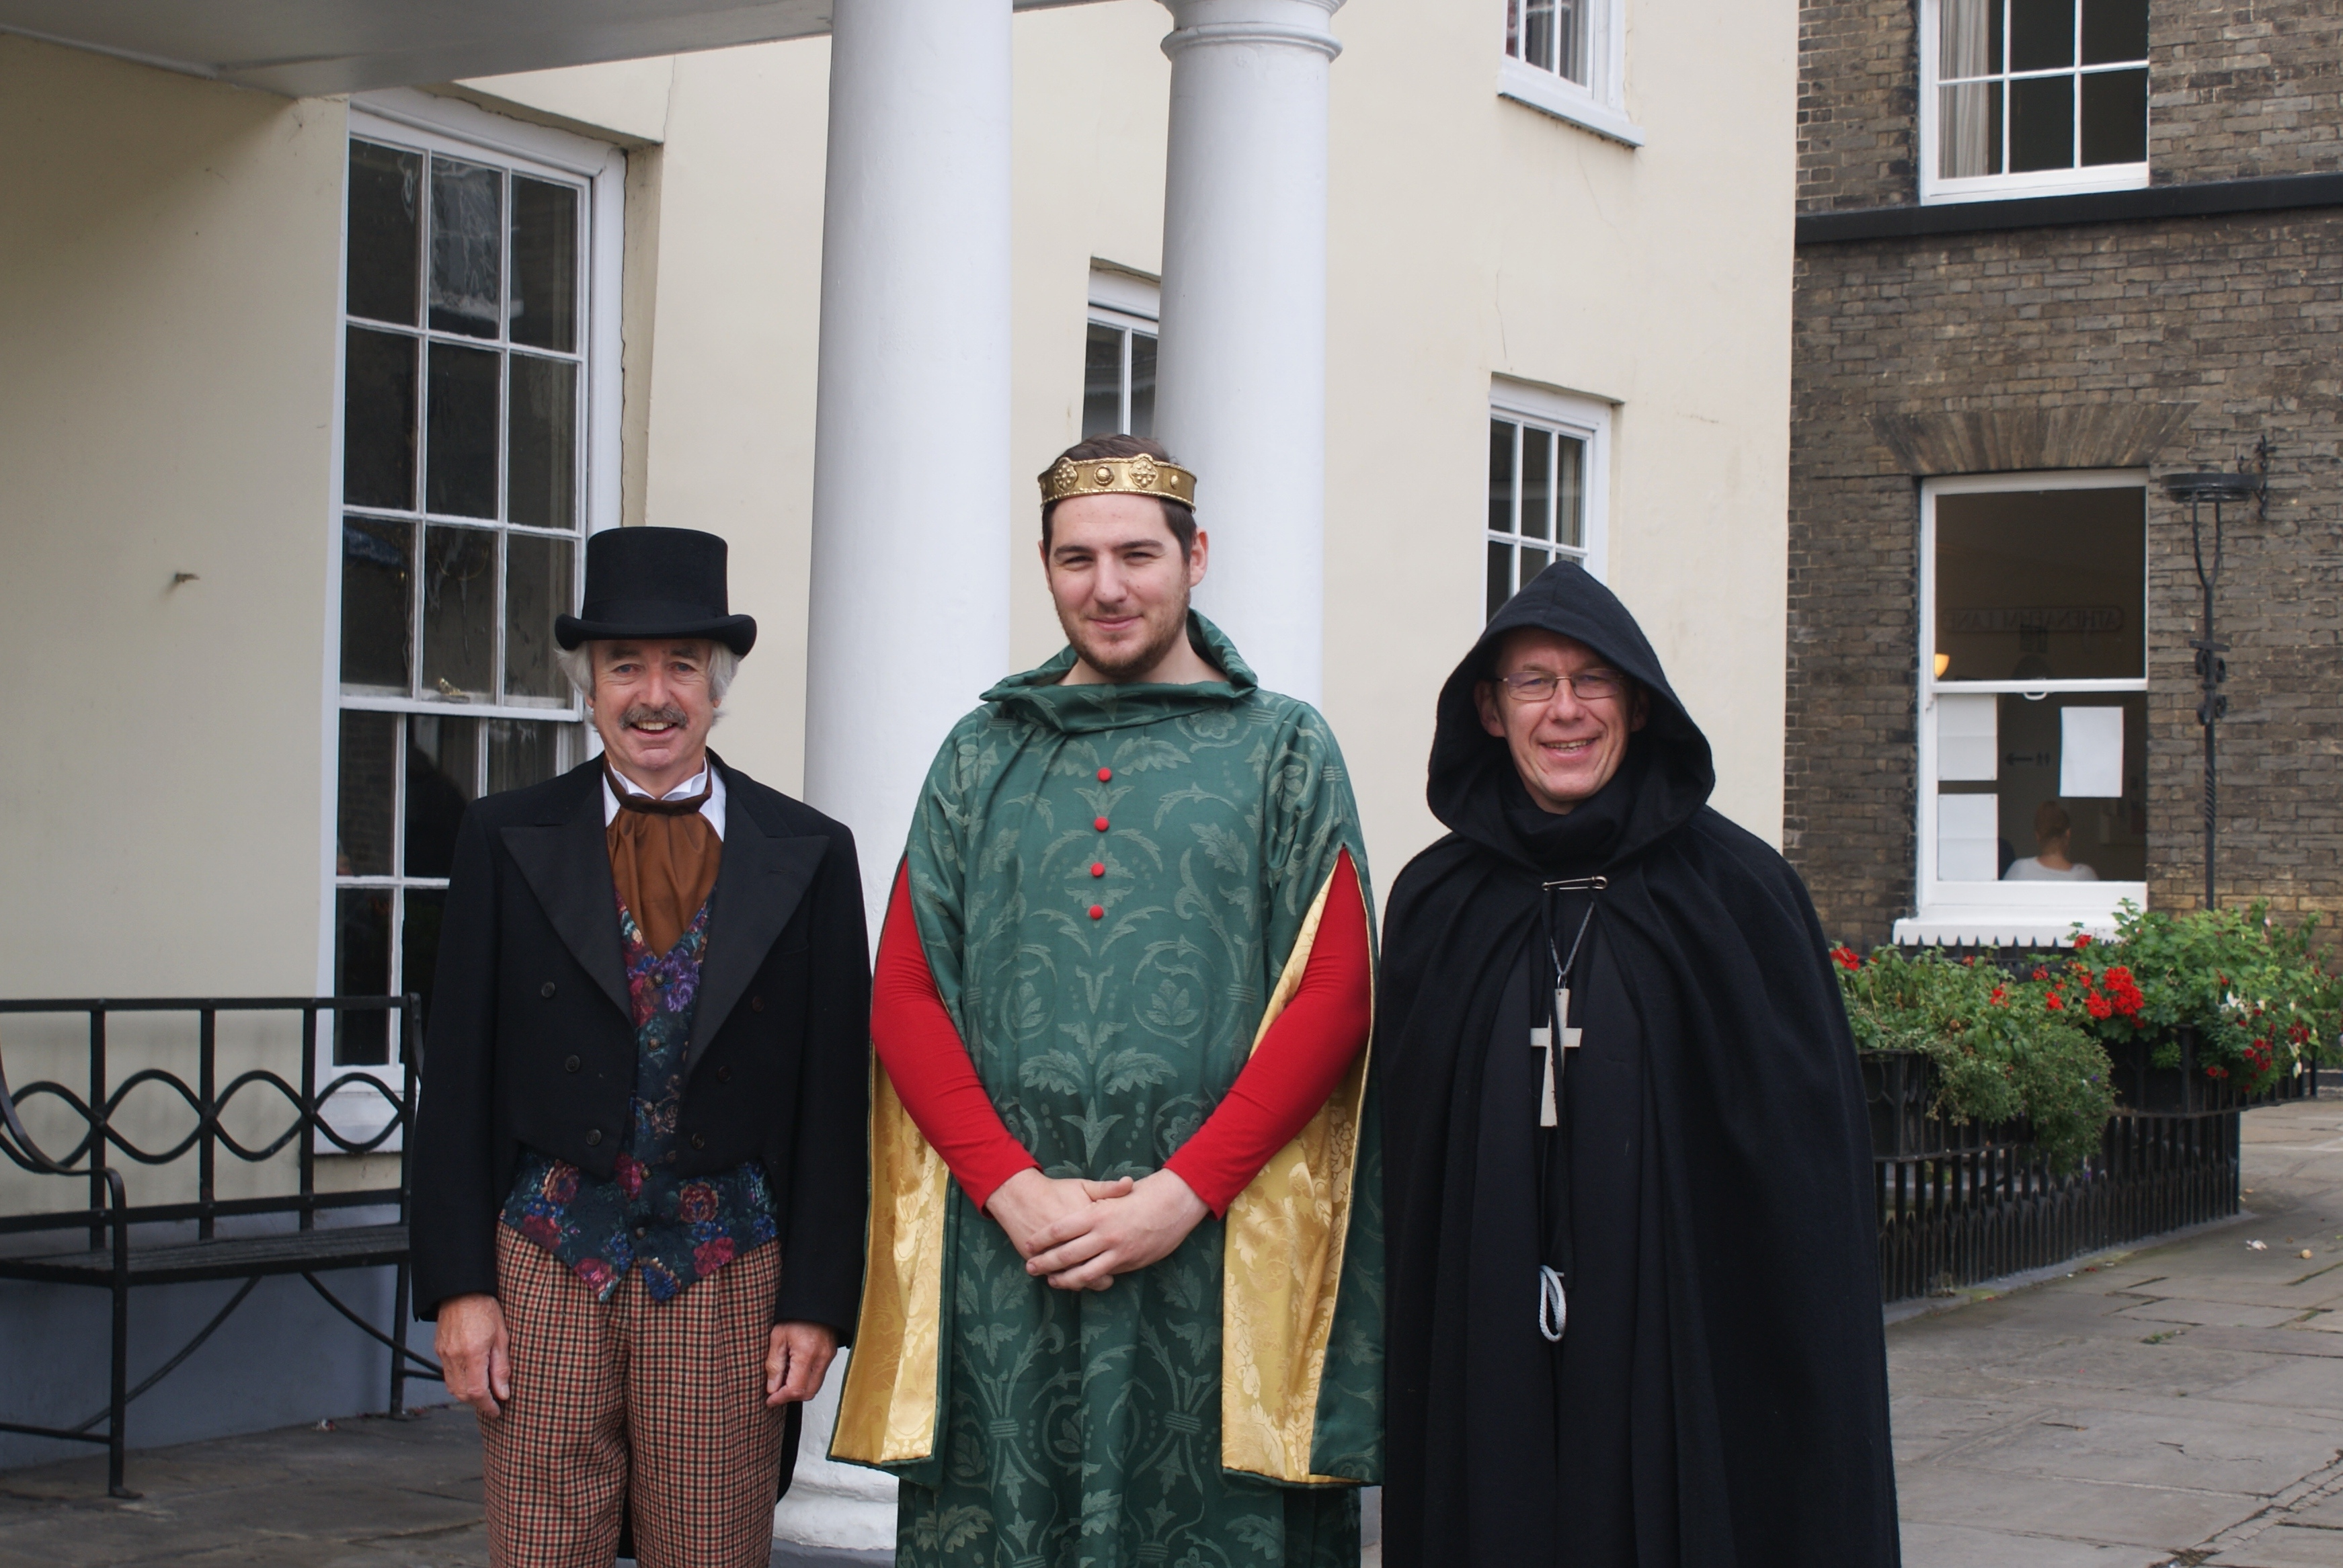 Meet Characters from Bury St Edmunds' Past at Tourism Fair!